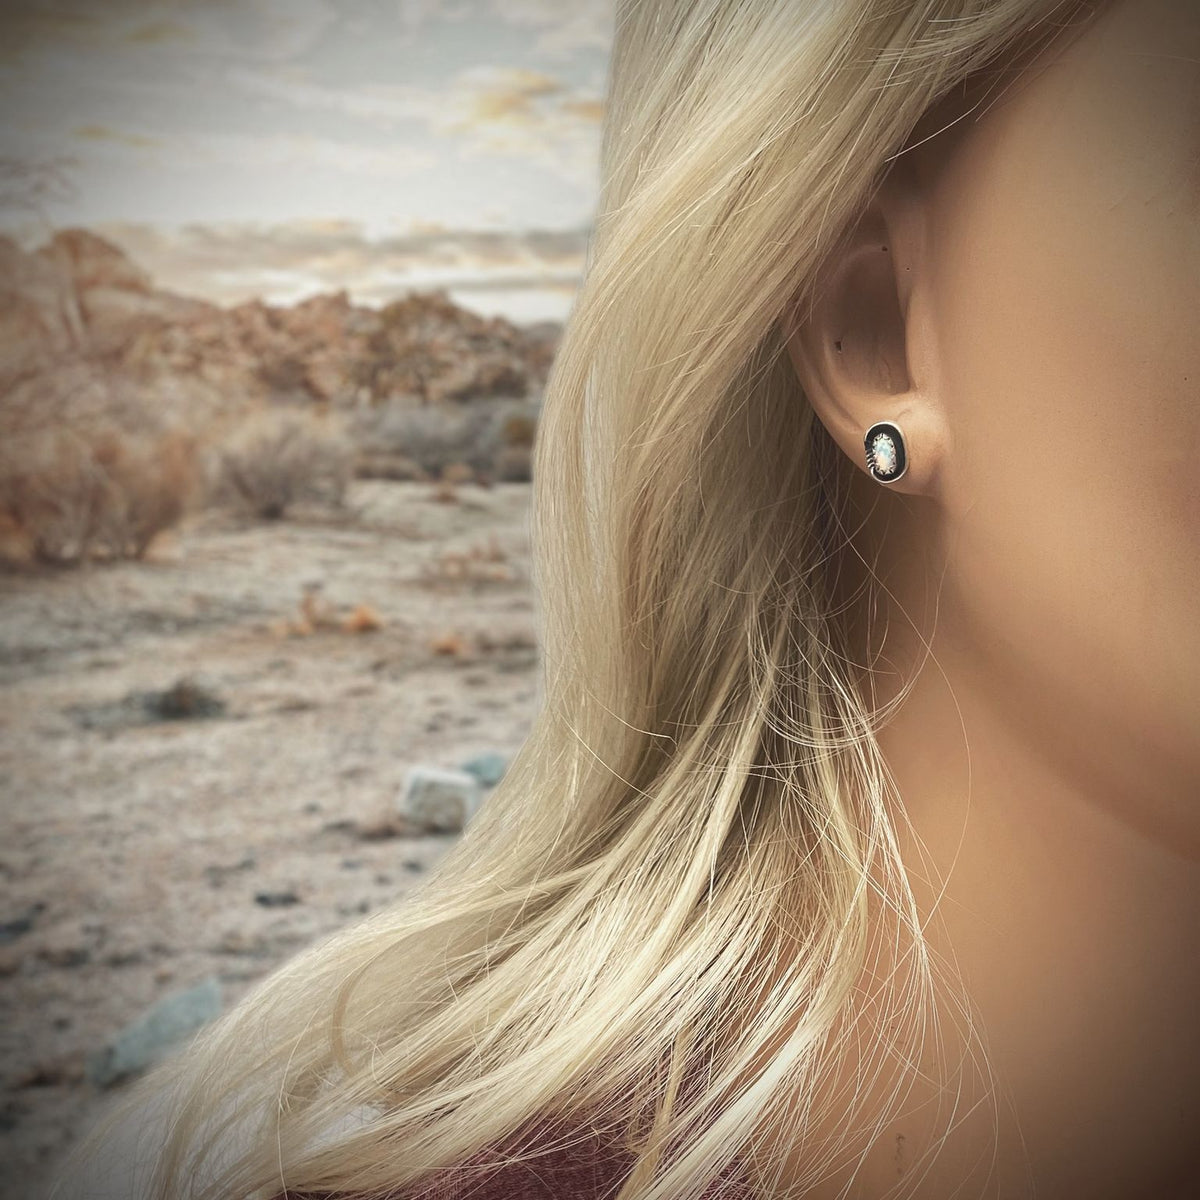 9mm Desert Opal Stud Earrings in 925 Sterling Silver, Authentic Native American Handmade, Nickle Free, White Synthetic Opal